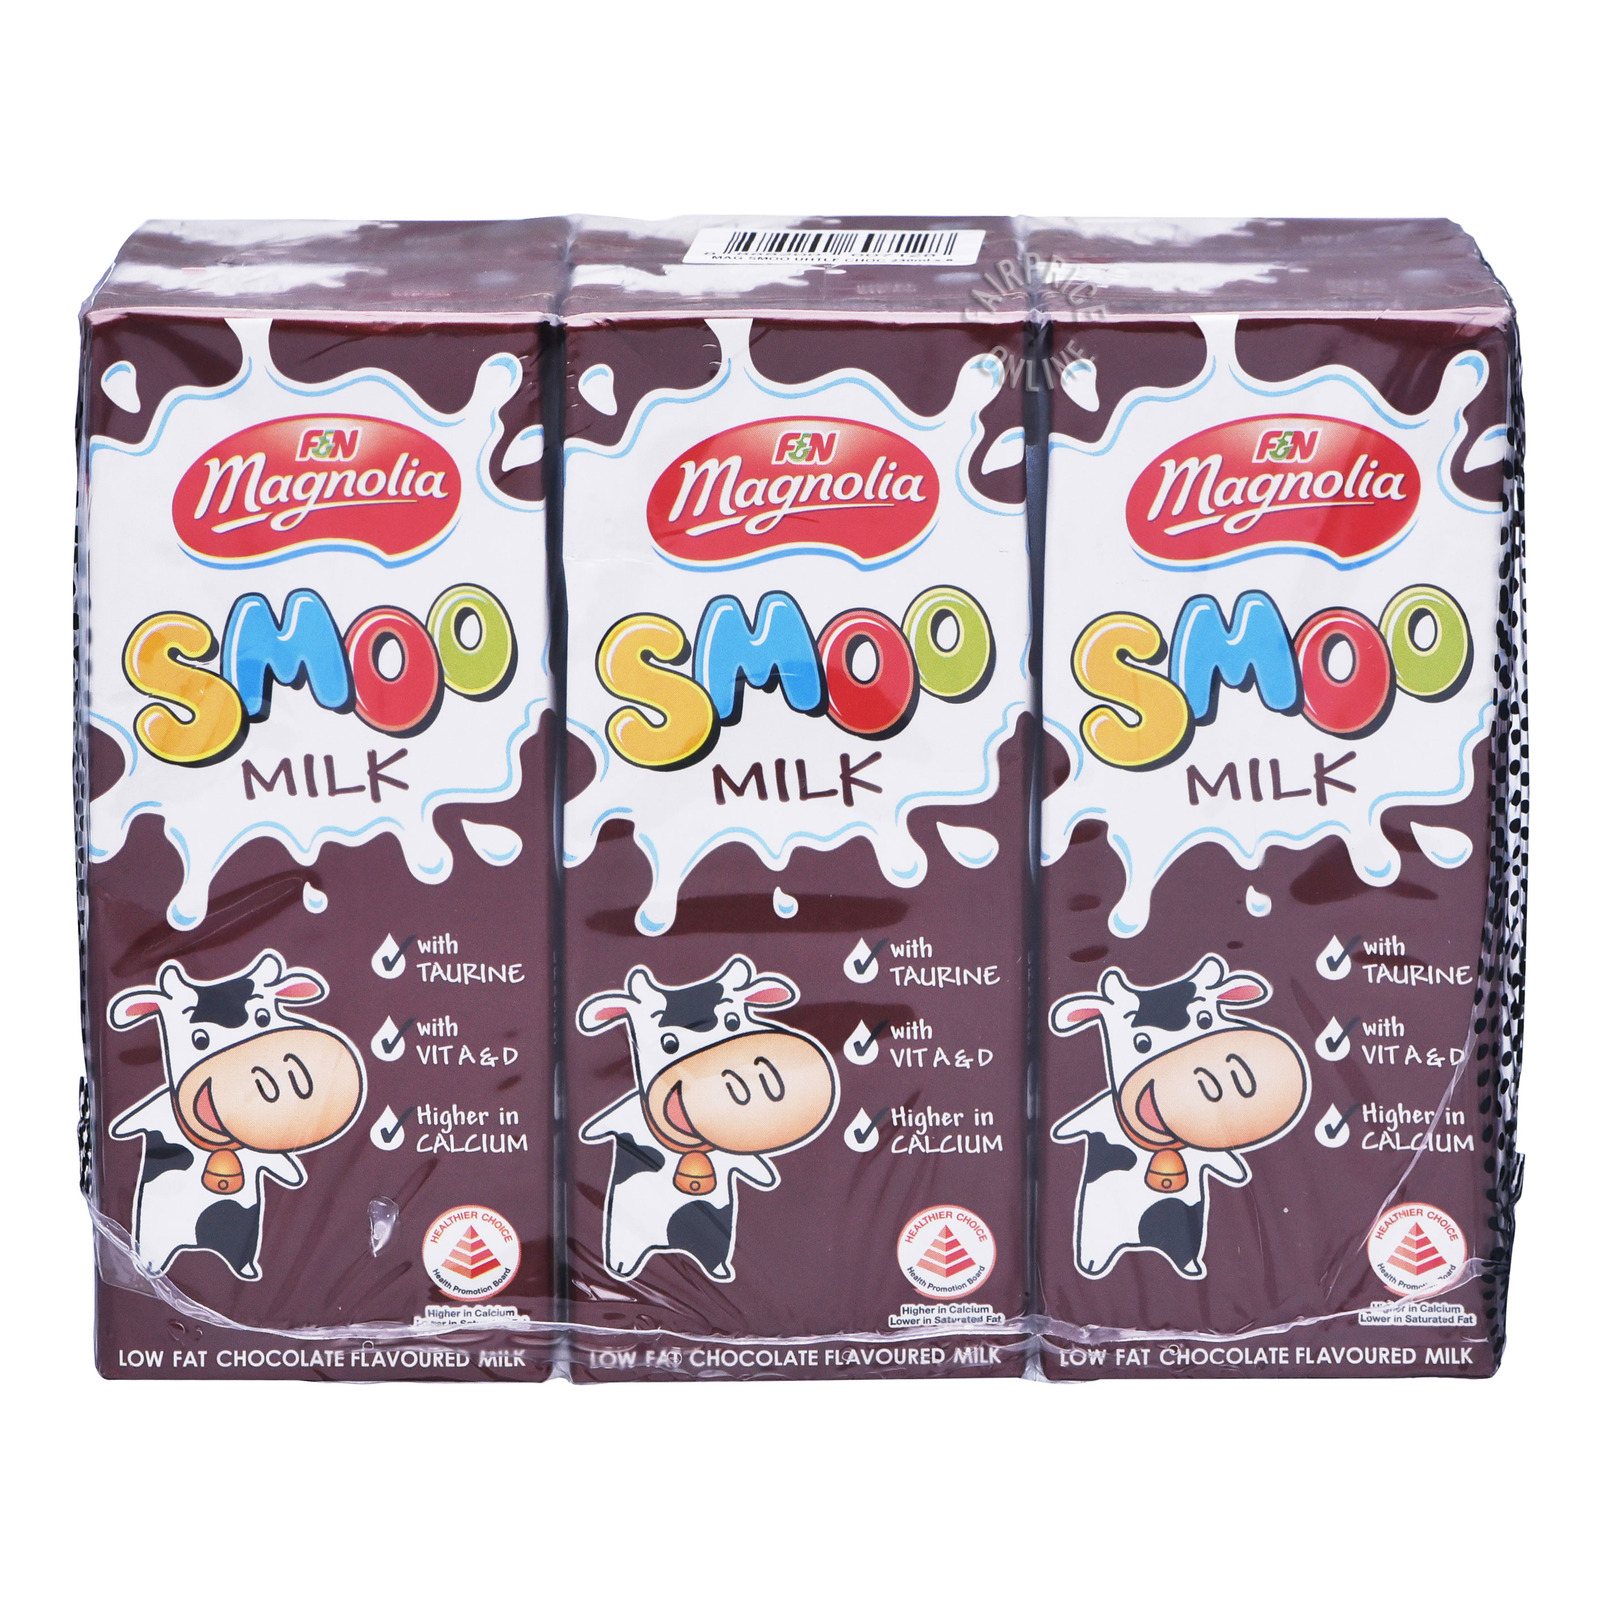 F&N Magnolia UHT Smoo Packet Milk - Chocolate